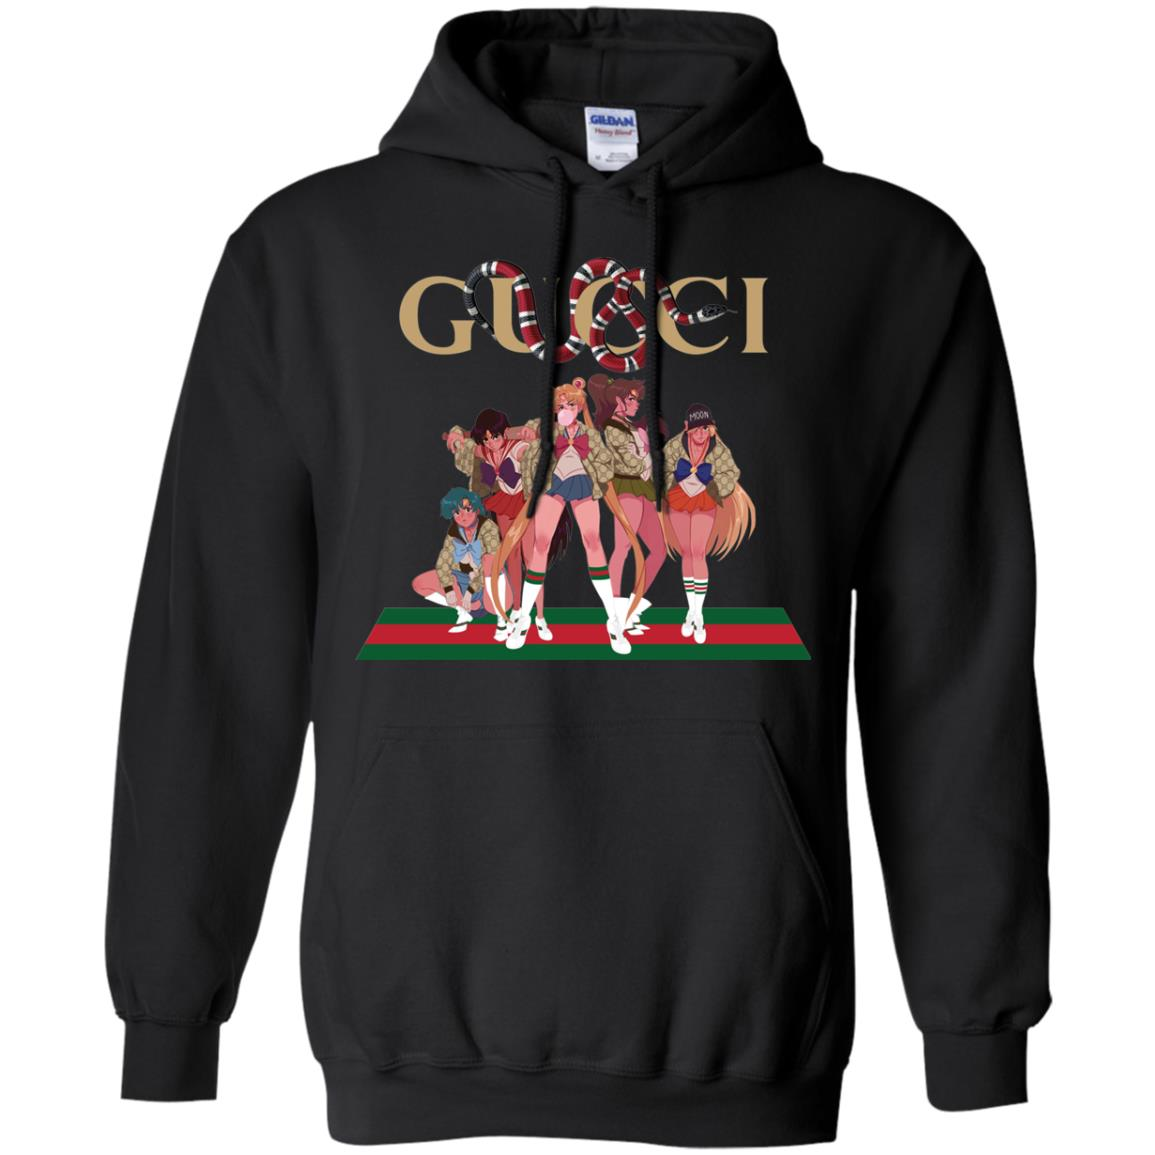 Gucci Sailor Moon Gang Mashup T Shirts Hoodies Tank Top